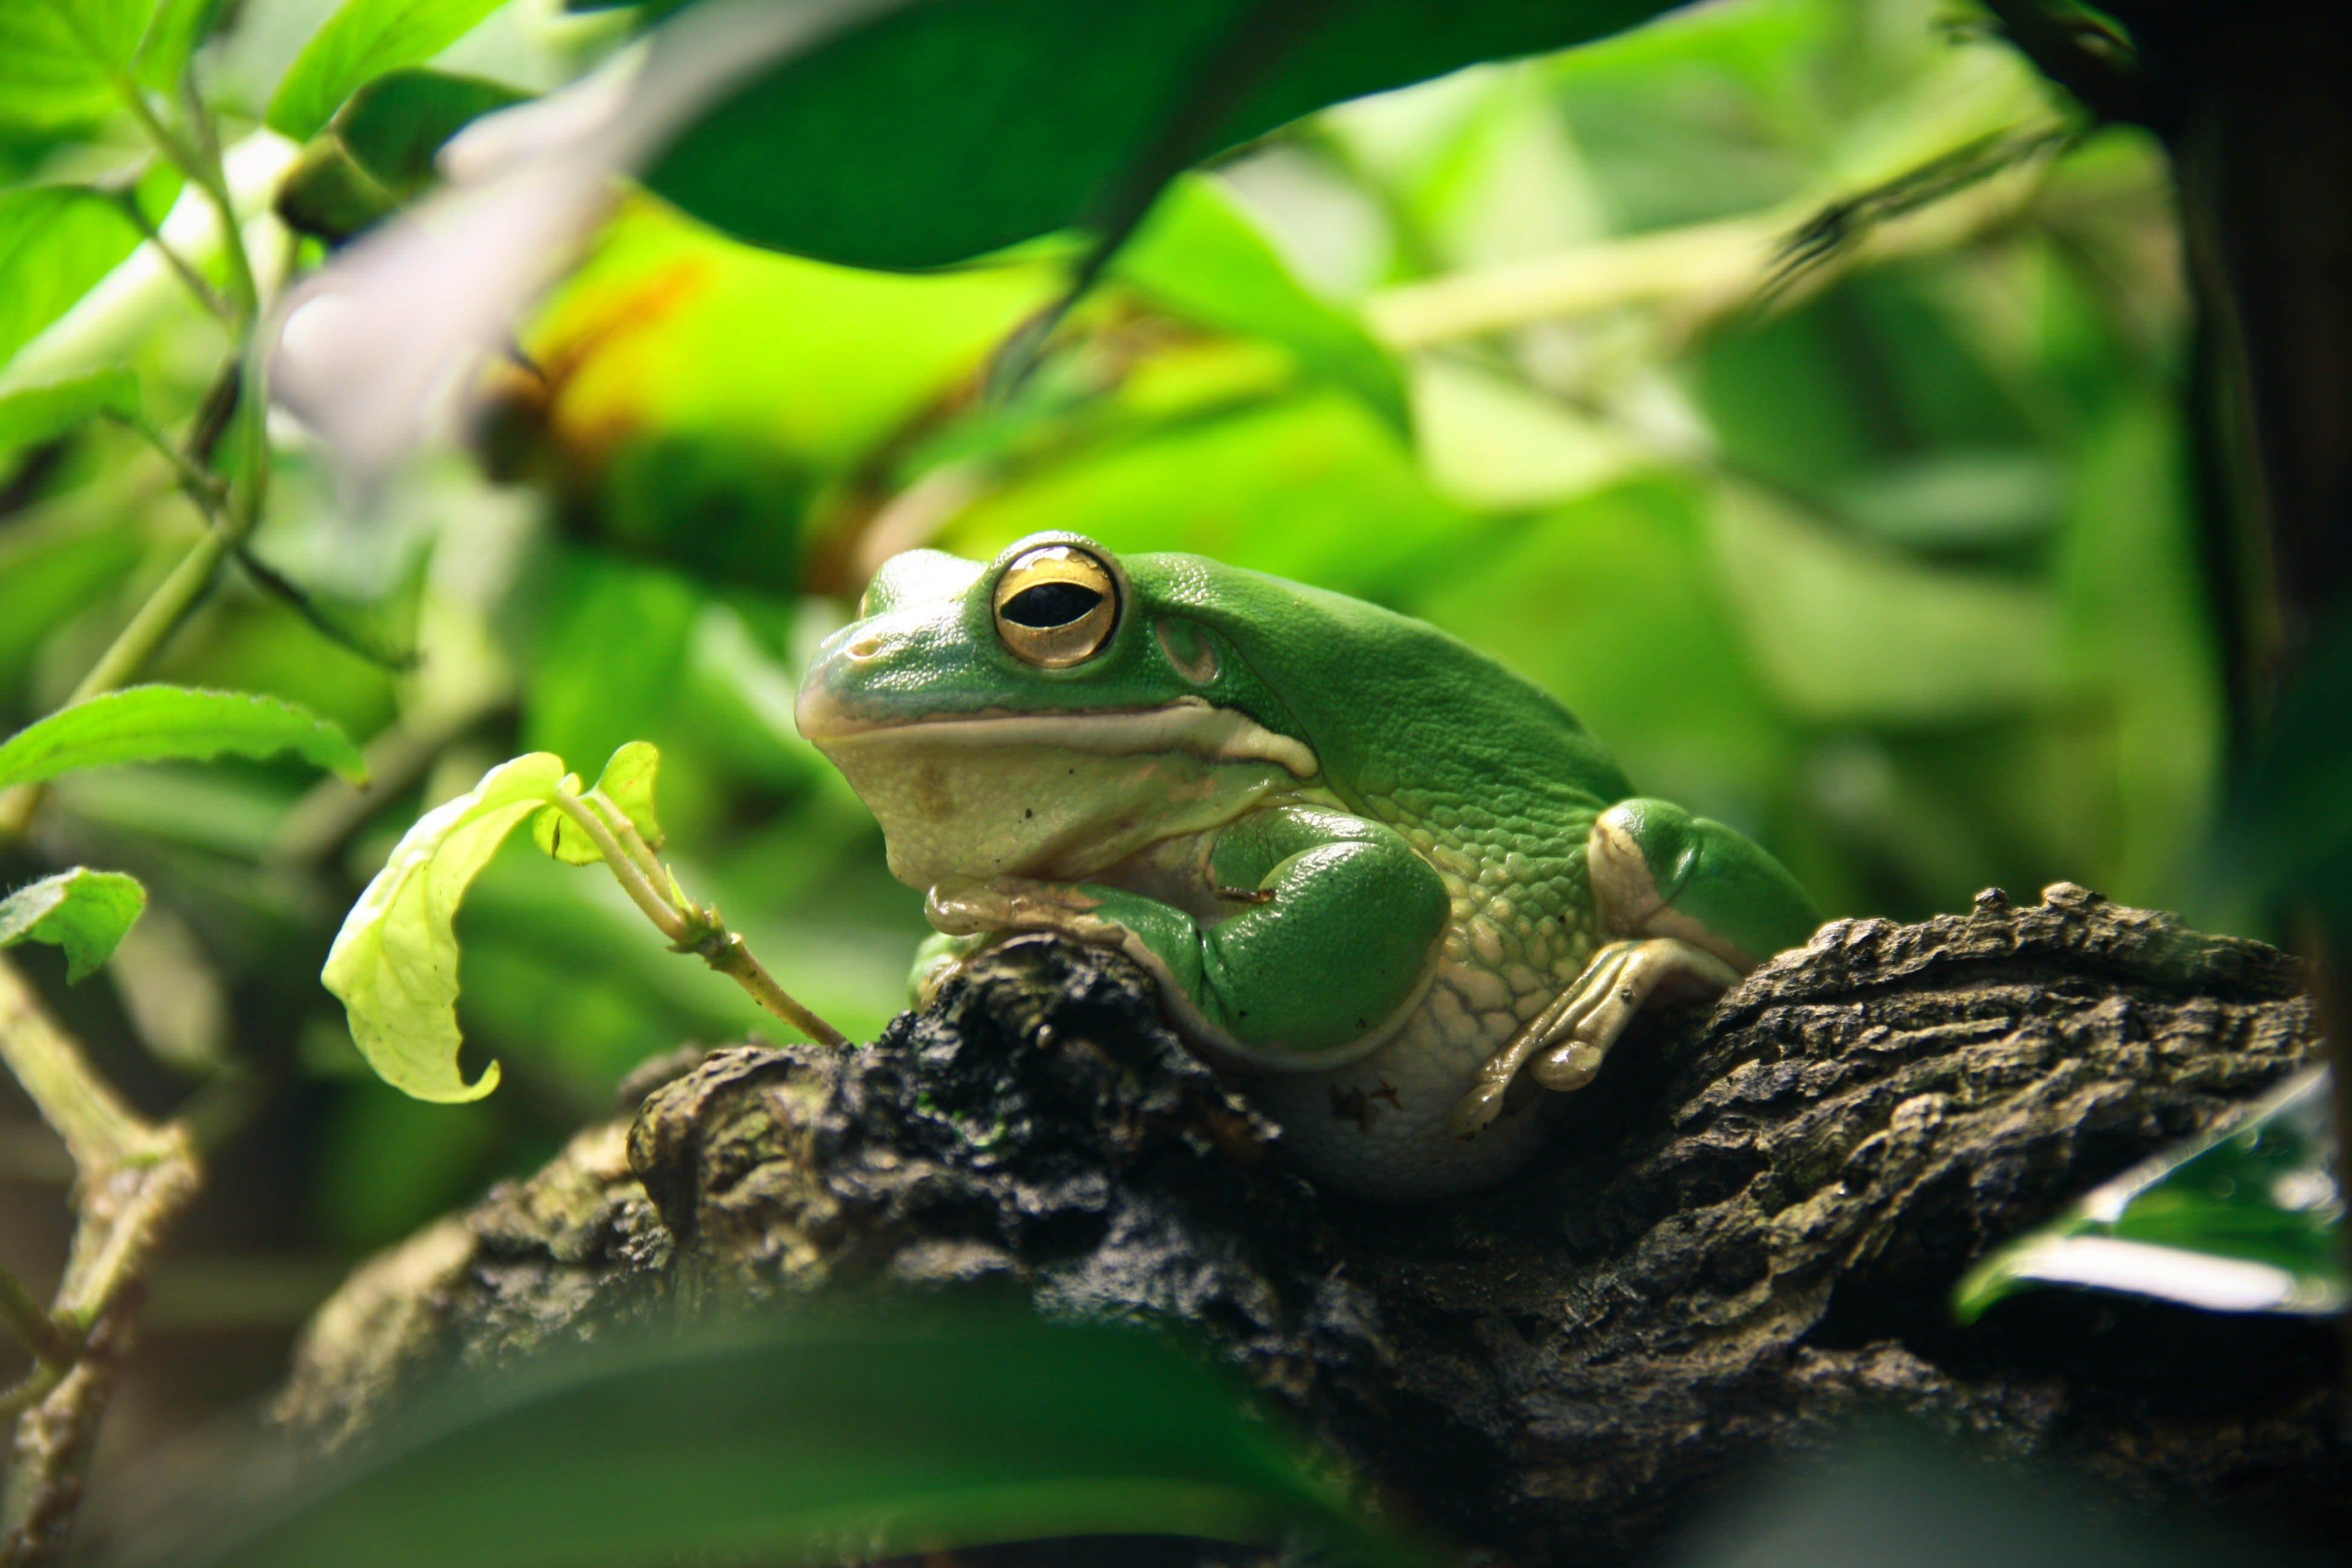 Pictured - A green and white frog on a tree branch   Source: Pexels